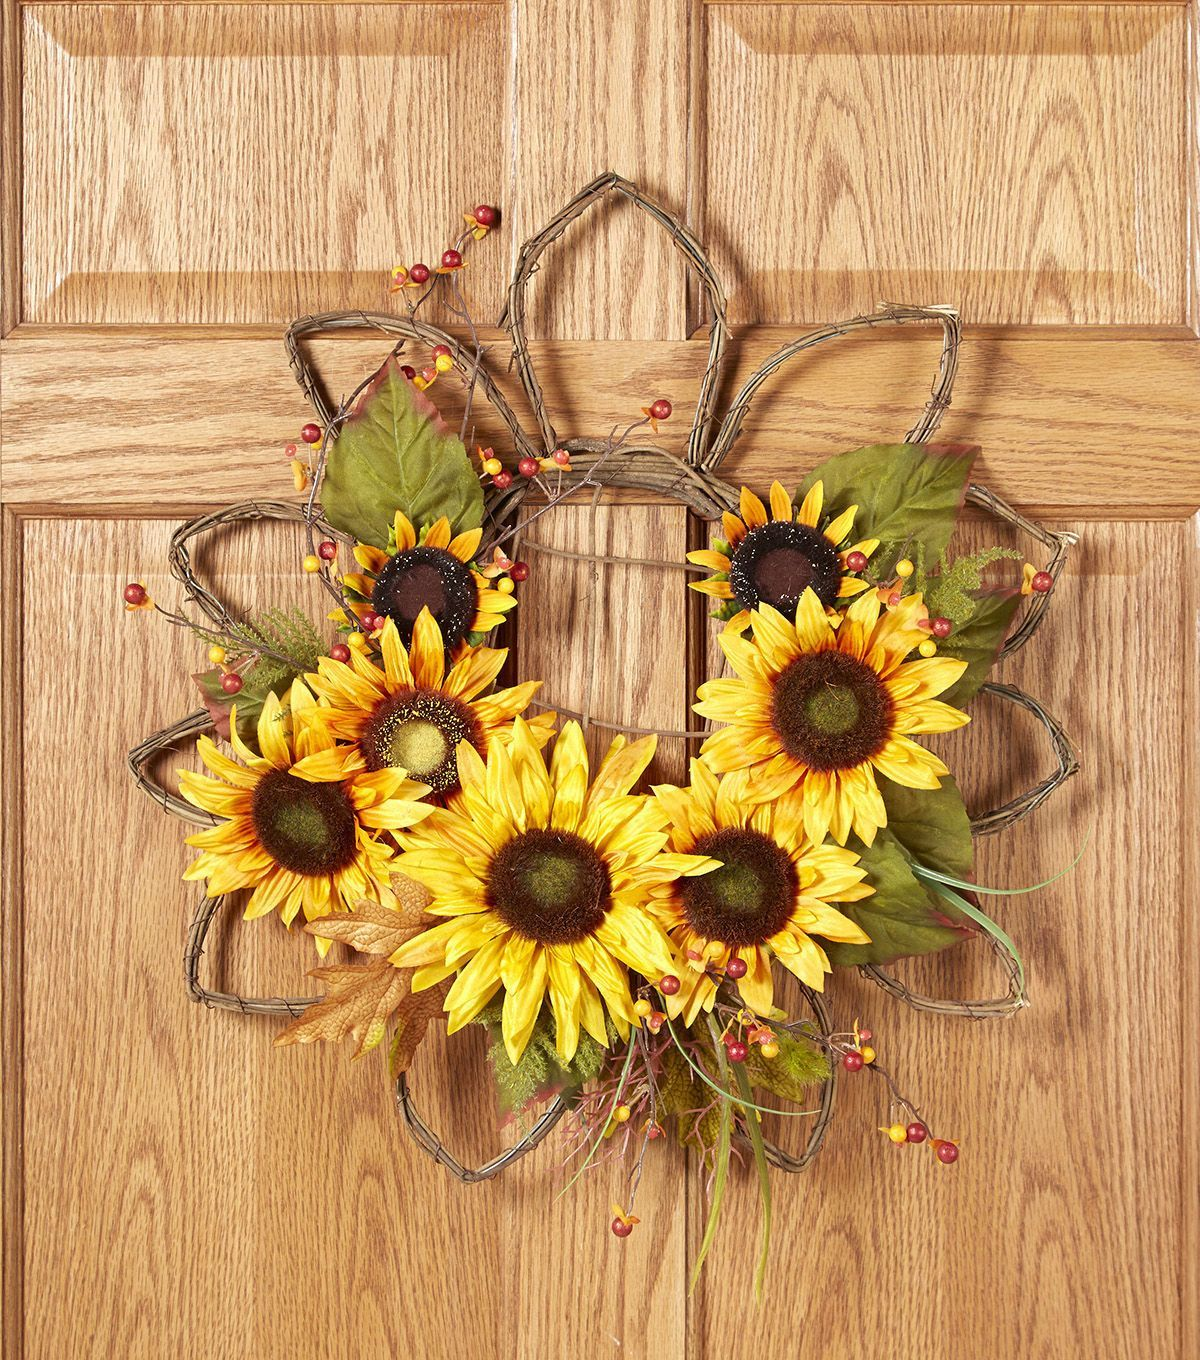 Fall For All Sunflower & Berry Wall Decor Yellow & Orange | Fall ...